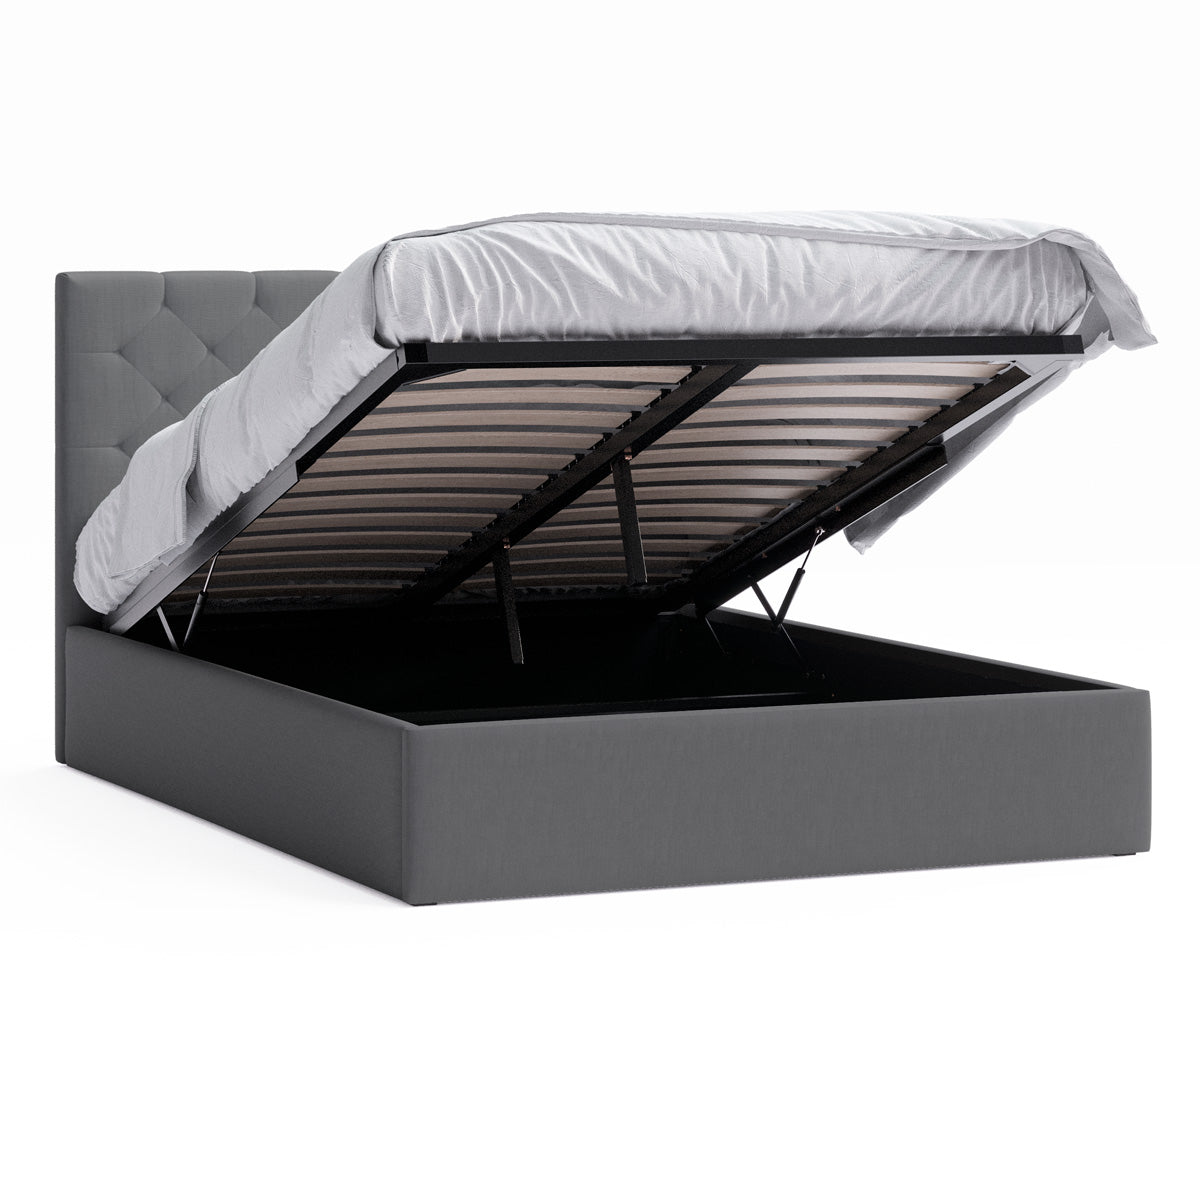 Webster Gas Lift Storage Bed Frame (Charcoal Fabric)